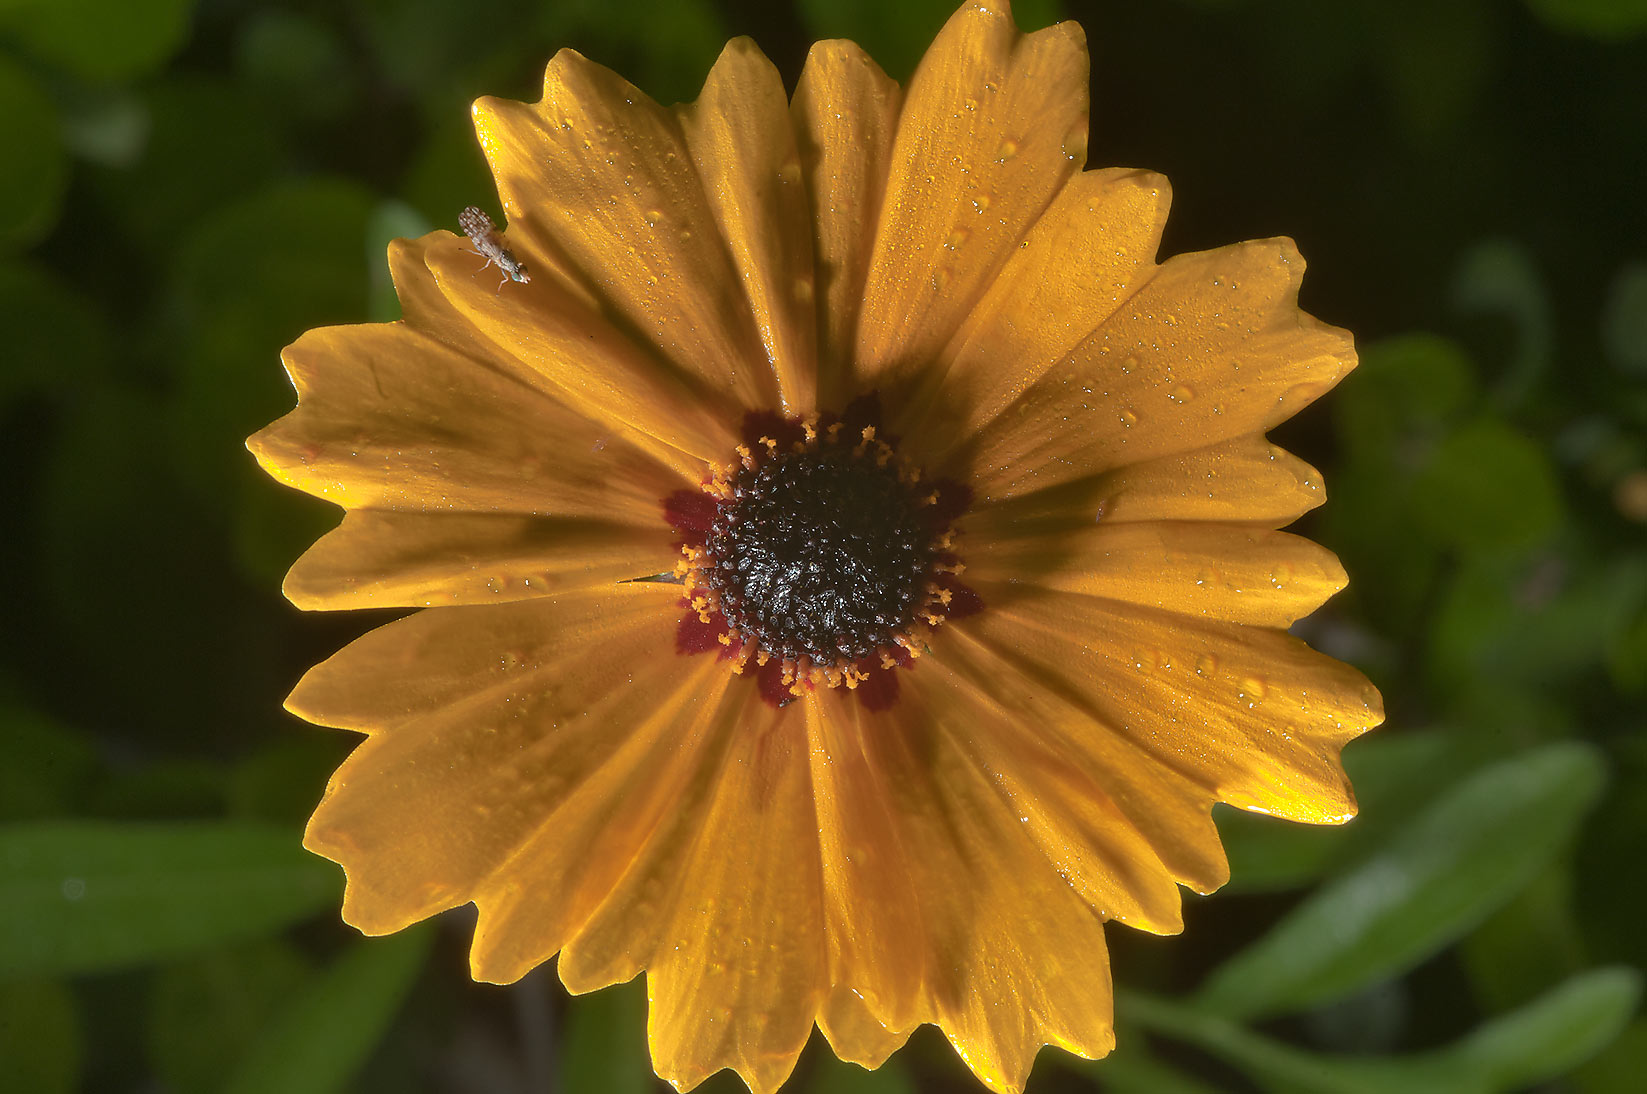 Coreopsis flower in Lick Creek Park. College Station, Texas